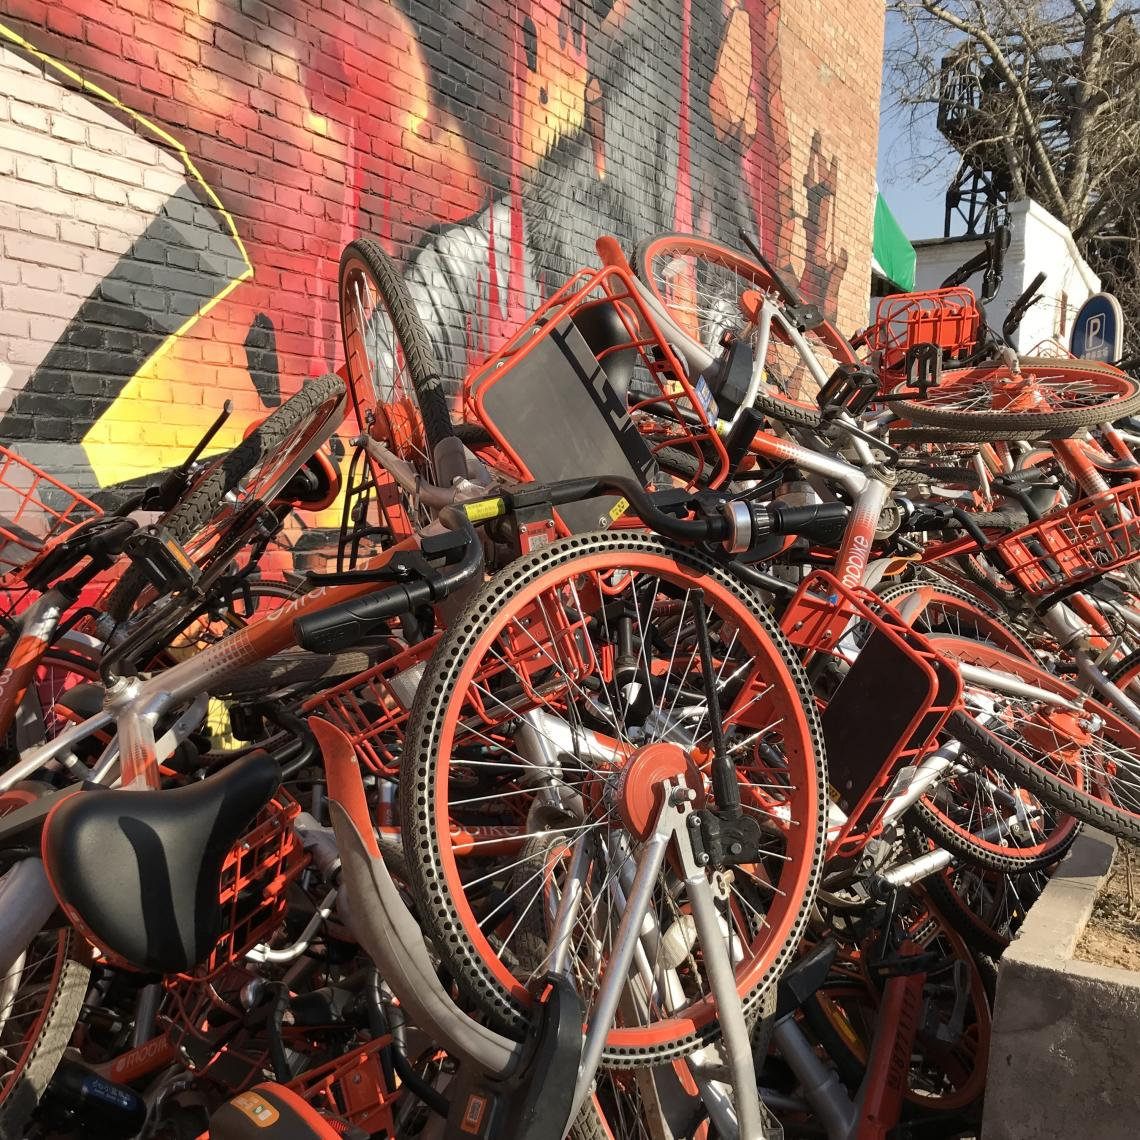 Bike_share_clutter_Beijing.jpg